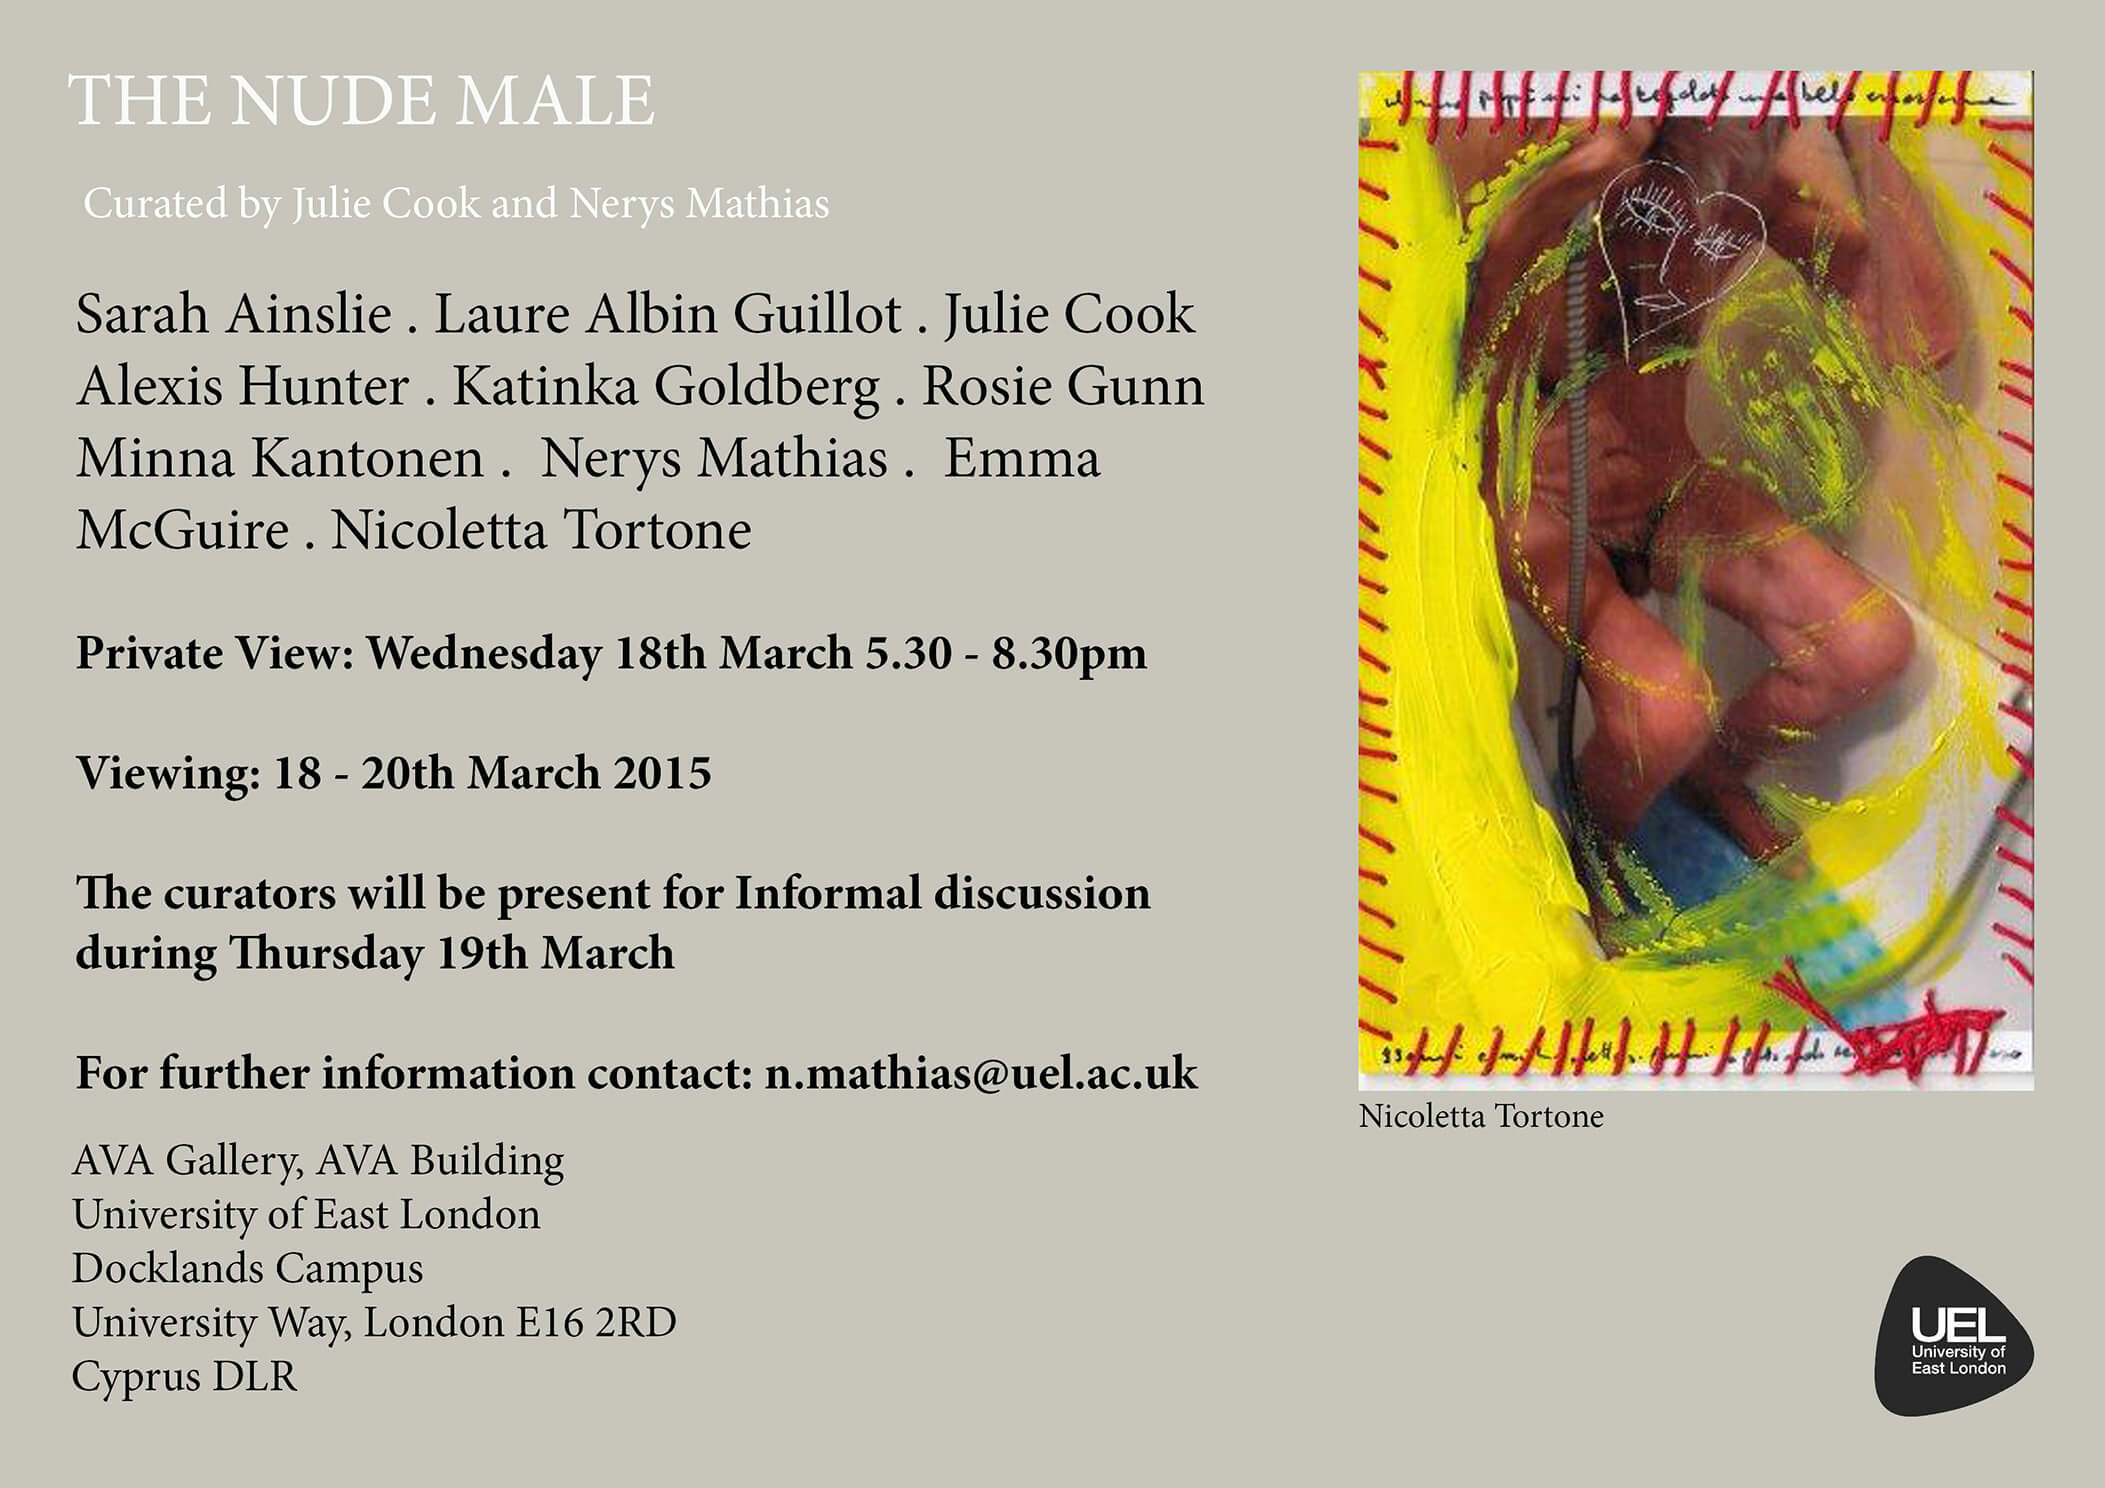 invite, the nude male, julie cook, nerys mathias, uel